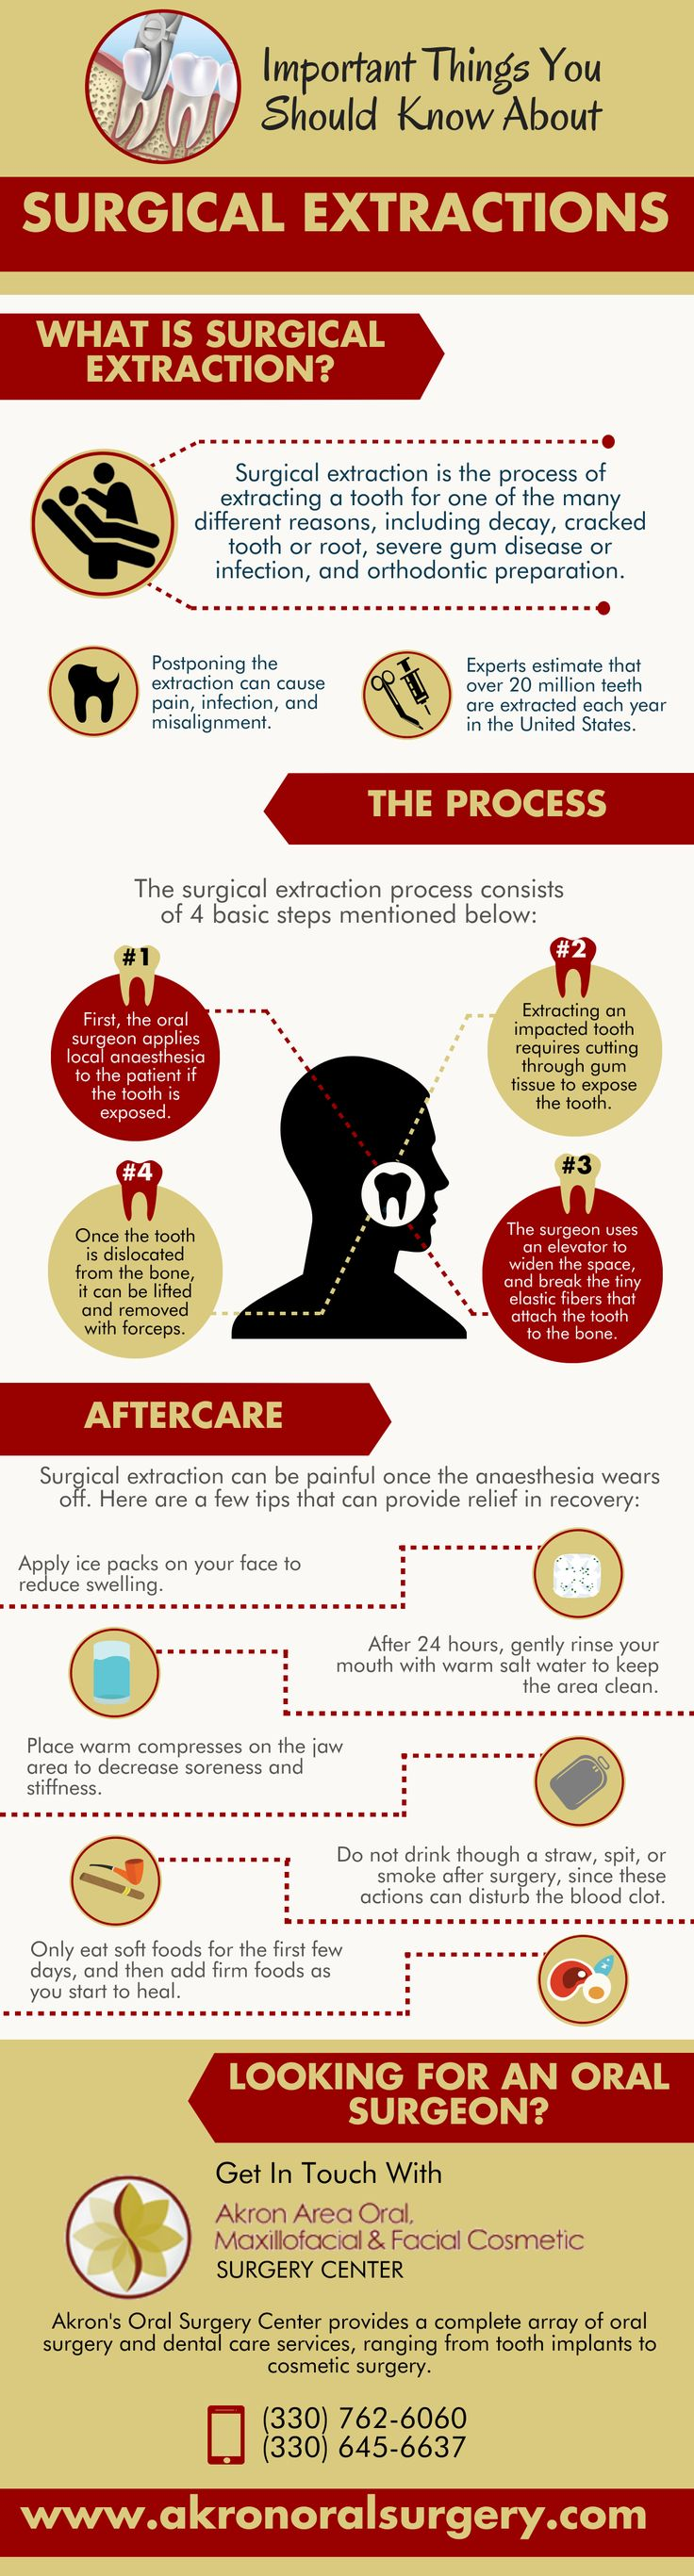 Maxillofacial Surgeons | Oral Surgery | Dental Implant Dentist – AkronOralSurgery.com